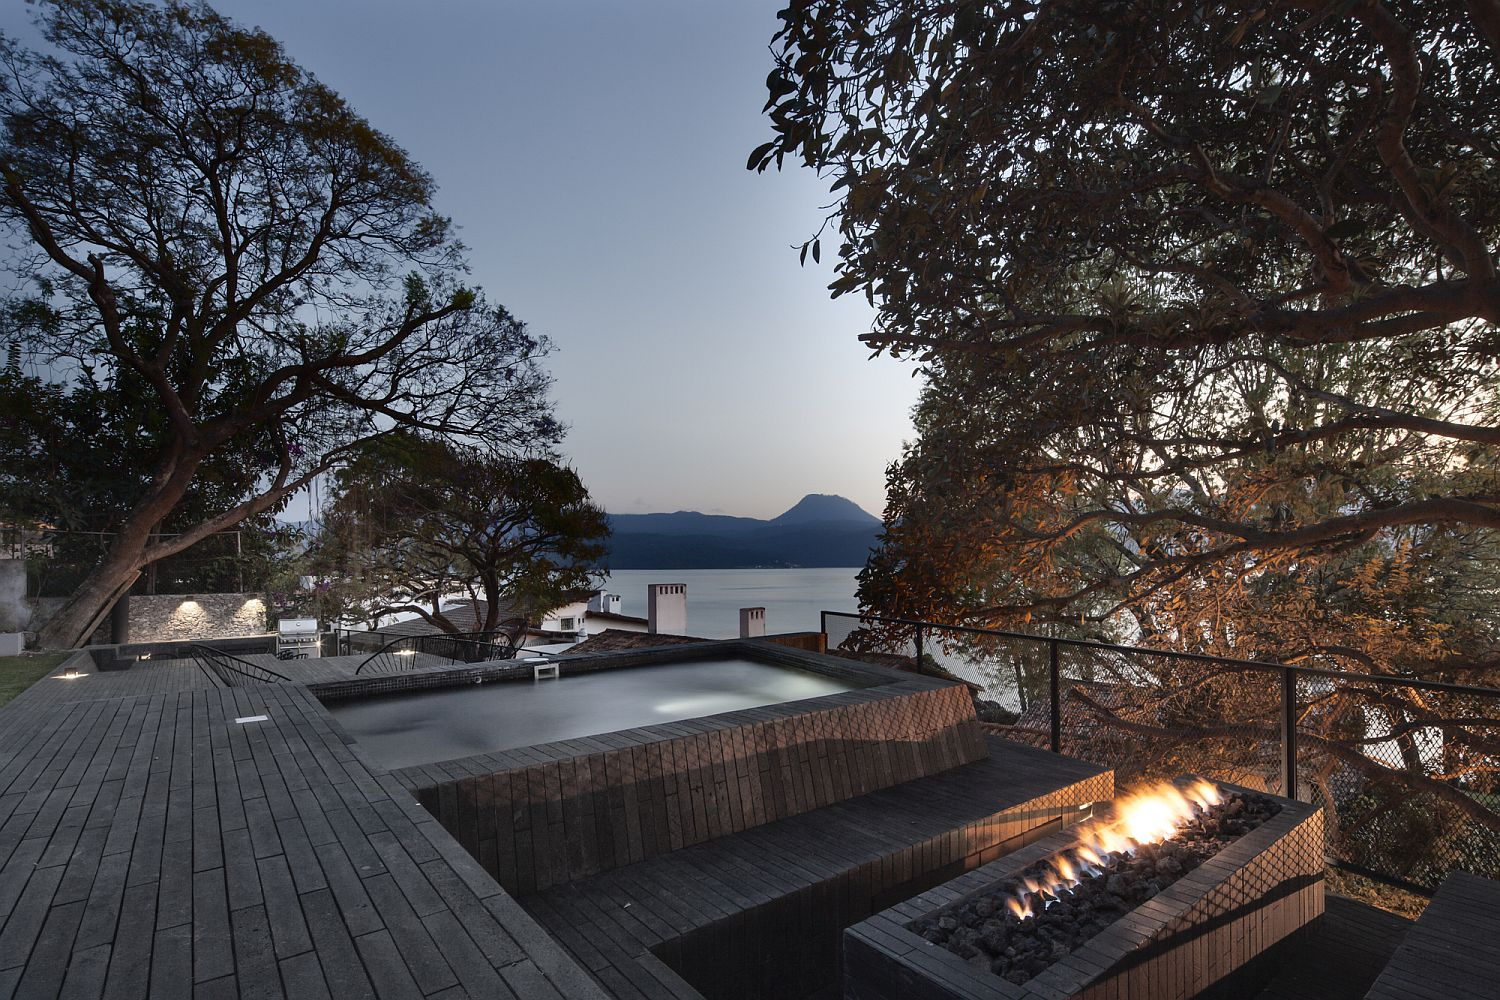 Outdoor sitting area and fireplace along with Jacuzzi that offers Lake views